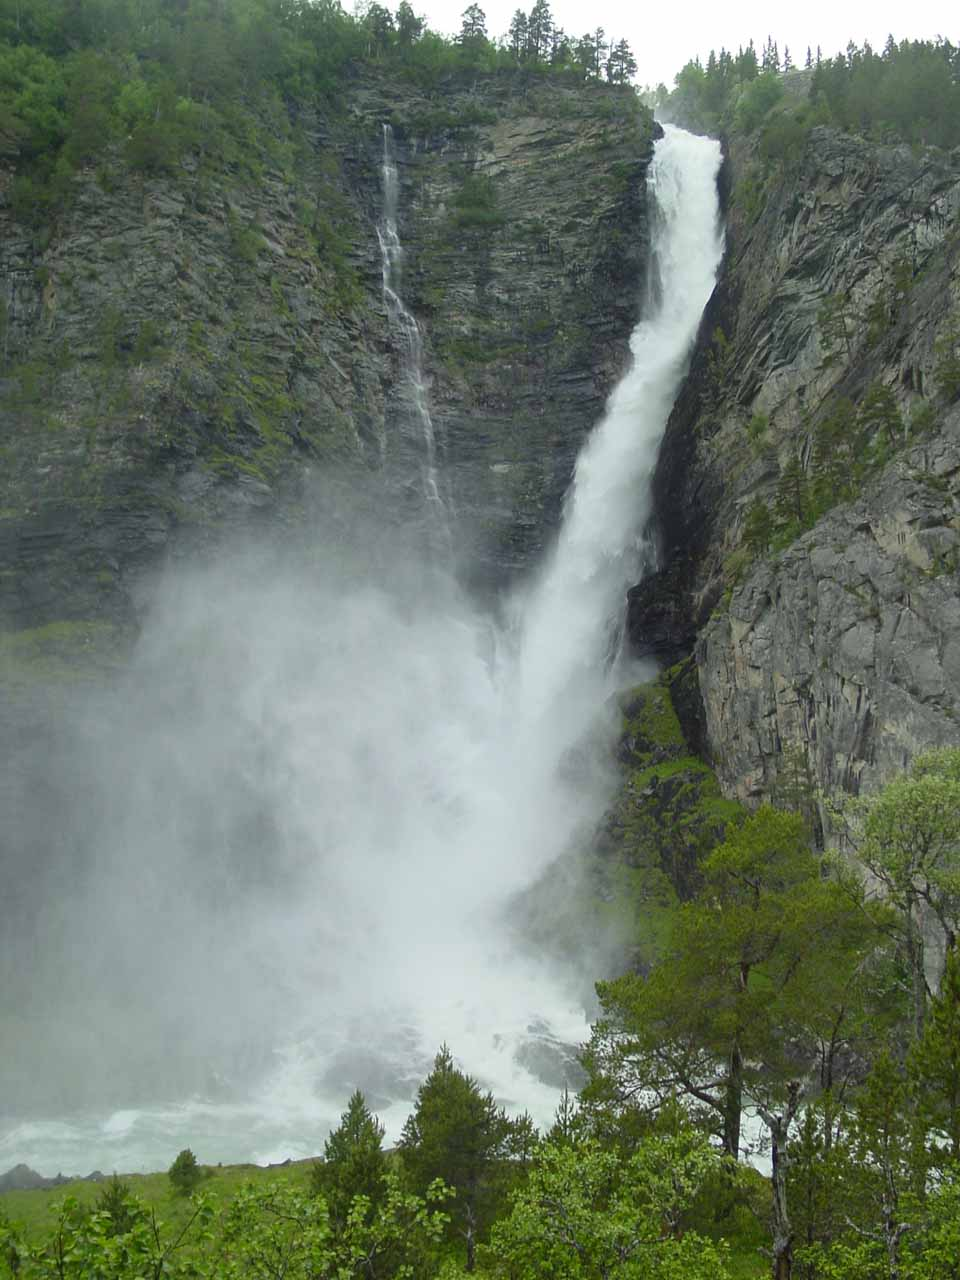 This was Svøufossen, which was the first waterfall we saw in the Åmotan area. Linndalsfossen was the last one since it required a moderate hike to get to